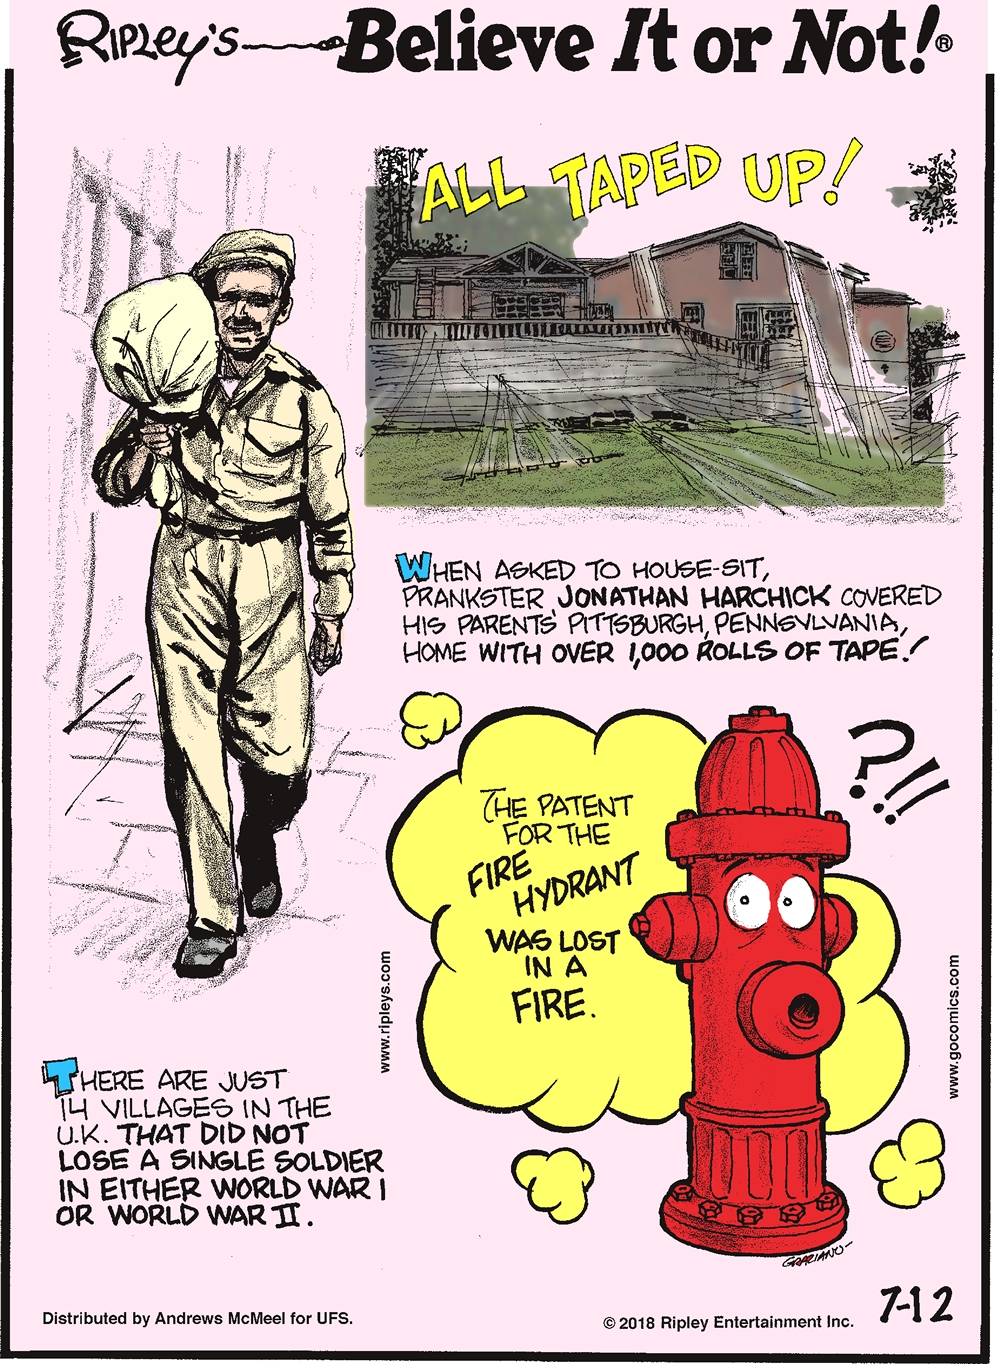 When asked to house-sit, prankster Jonathan Harchick covered his parents' Pittsburgh, Pennsylvania, home with over 1,000 rolls of tape!-------------------- There are just 14 villages in the U.K. that did not lose a single soldier in either World War I or World War II.-------------------- The patent for the fire hydrant was lost in a fire.